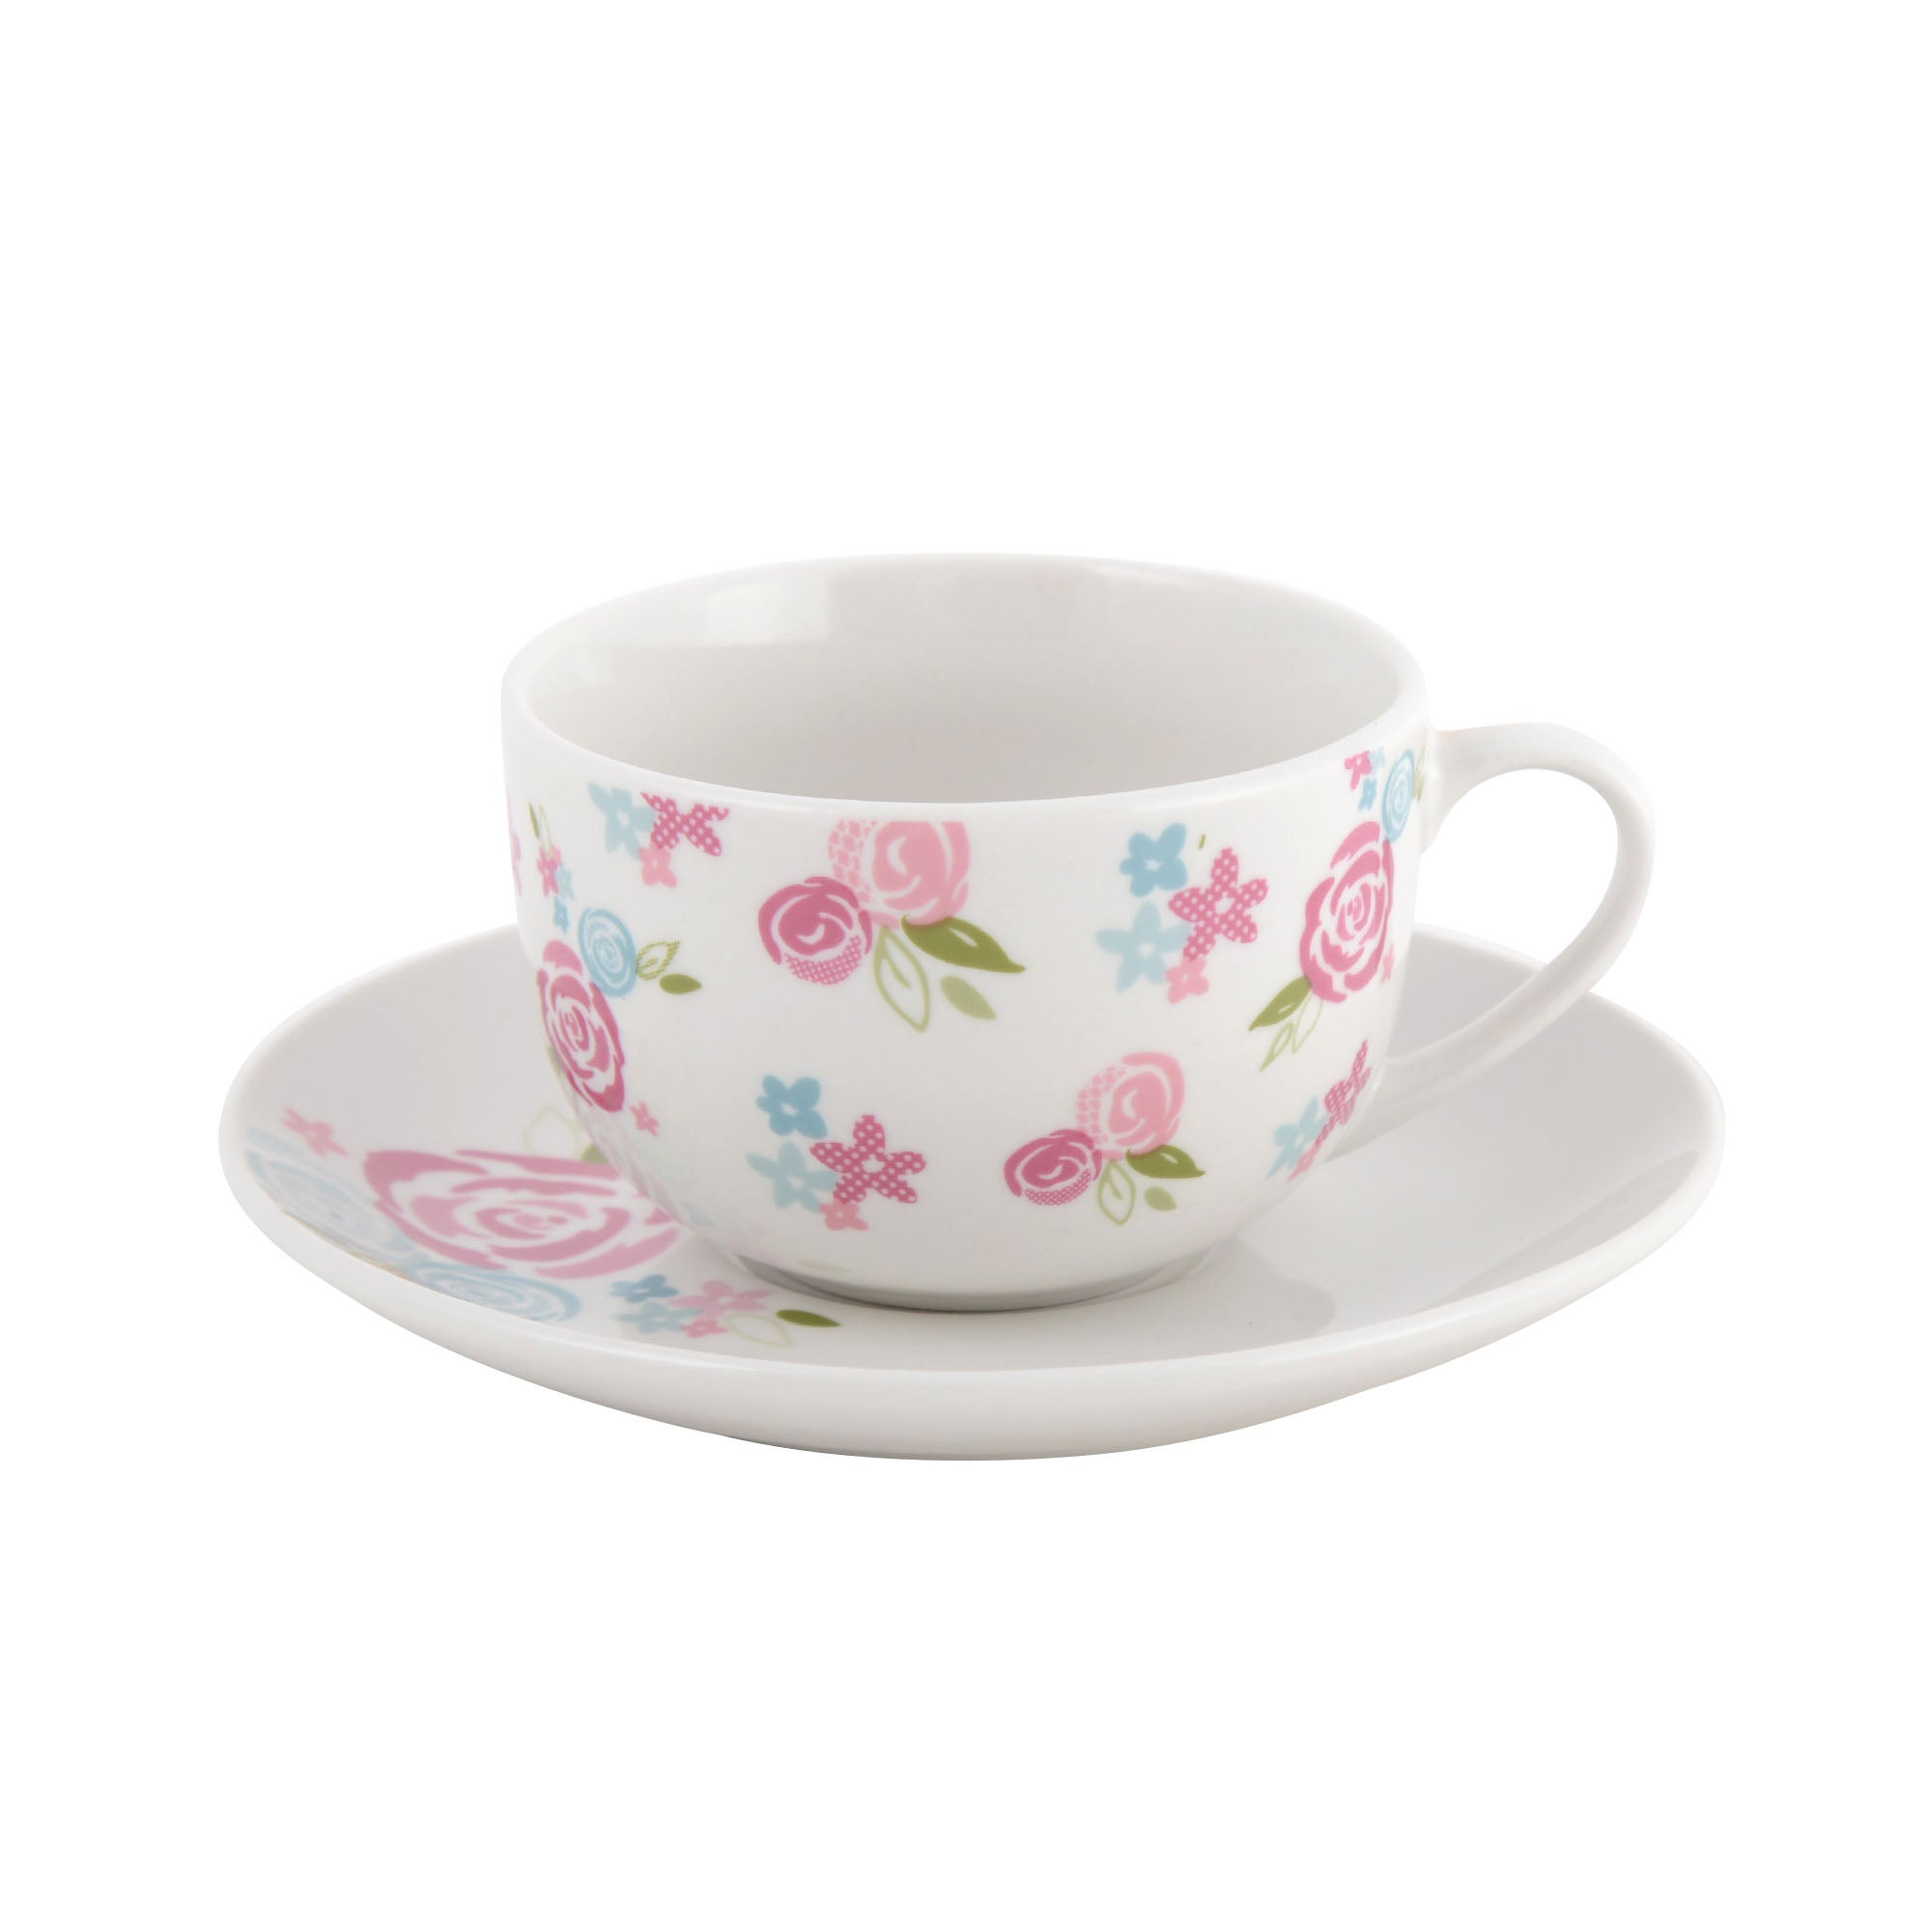 Candy Rose Collection Cup and Saucer